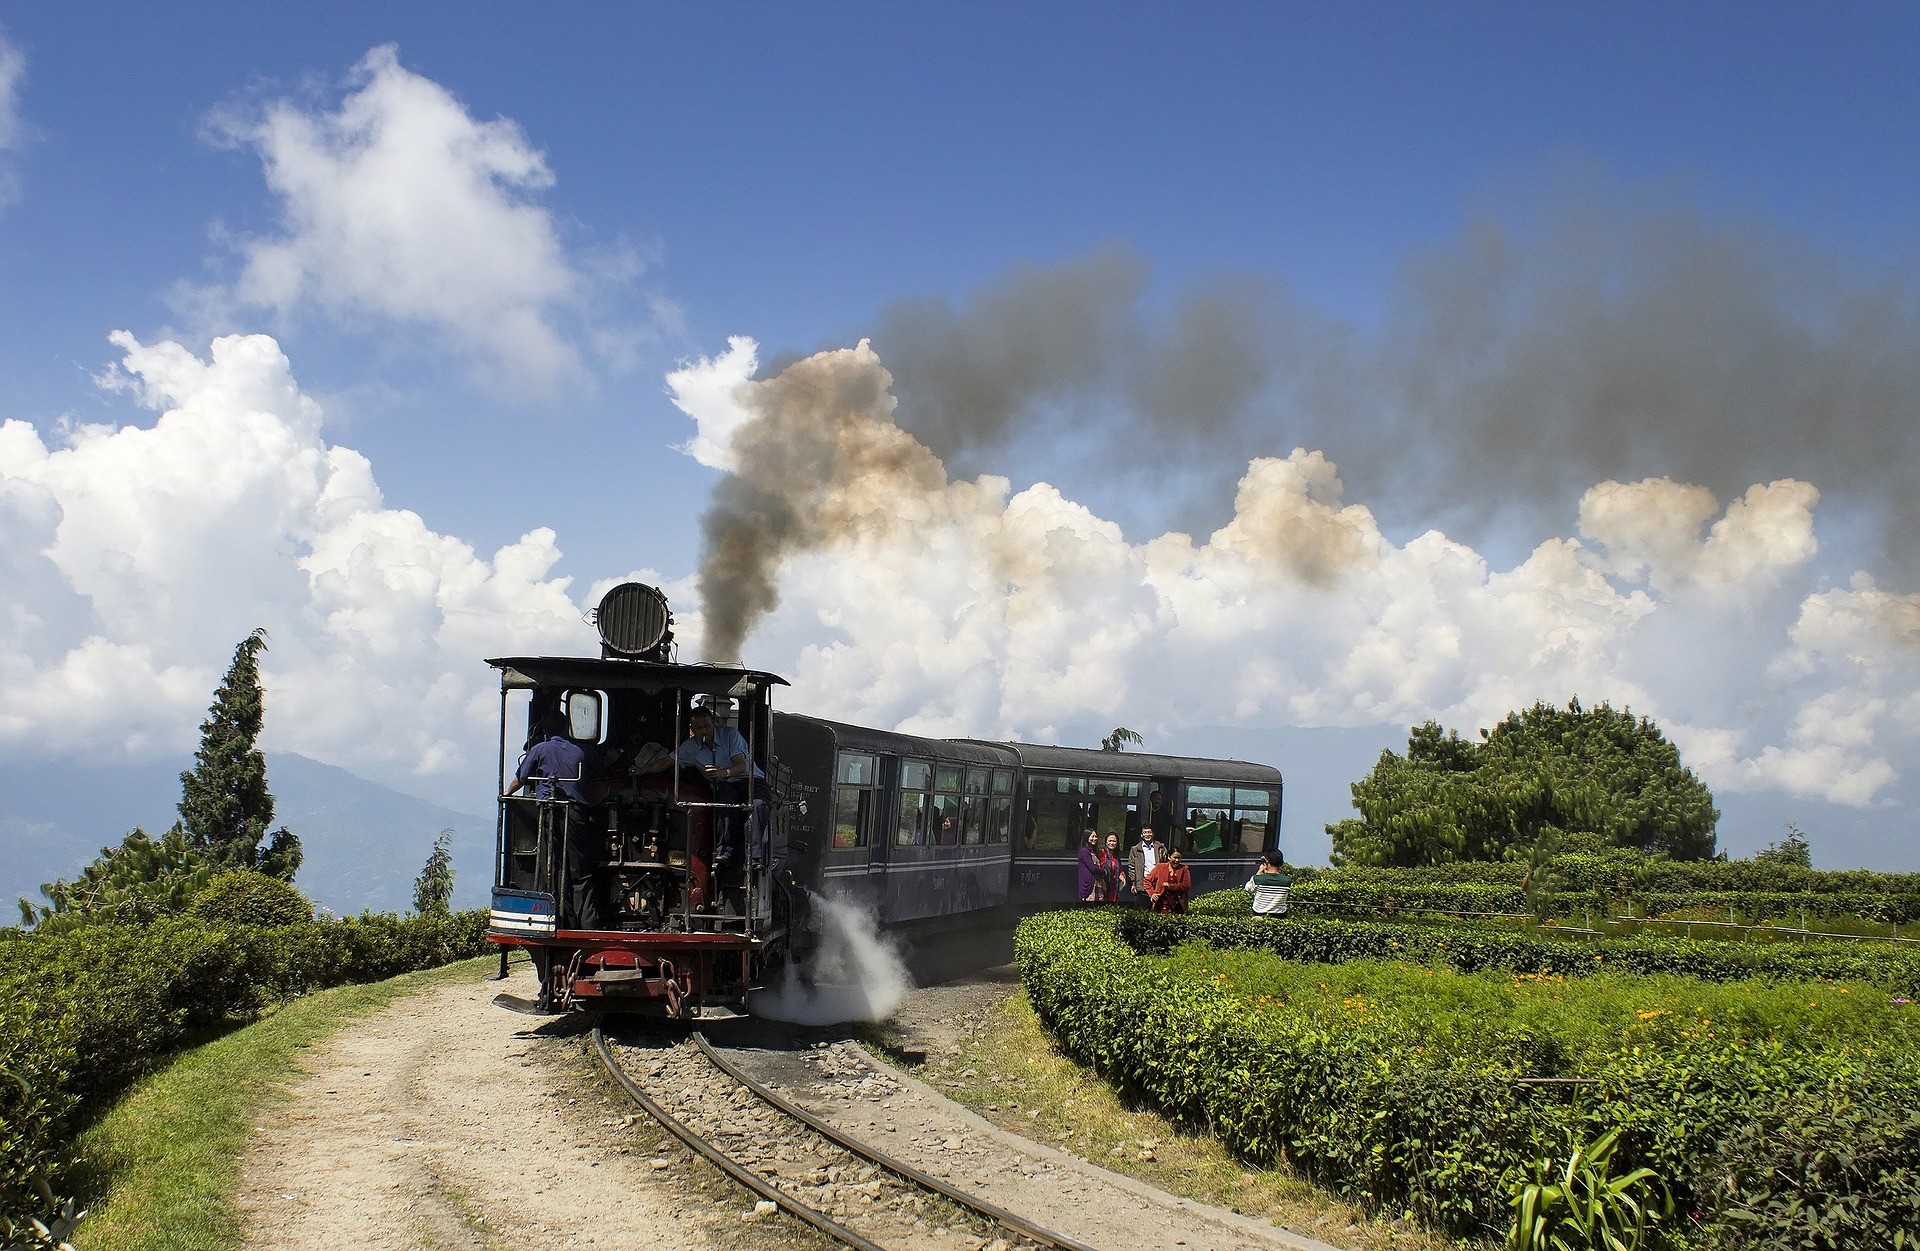 Darjeeling has more than just its world-famous tea.